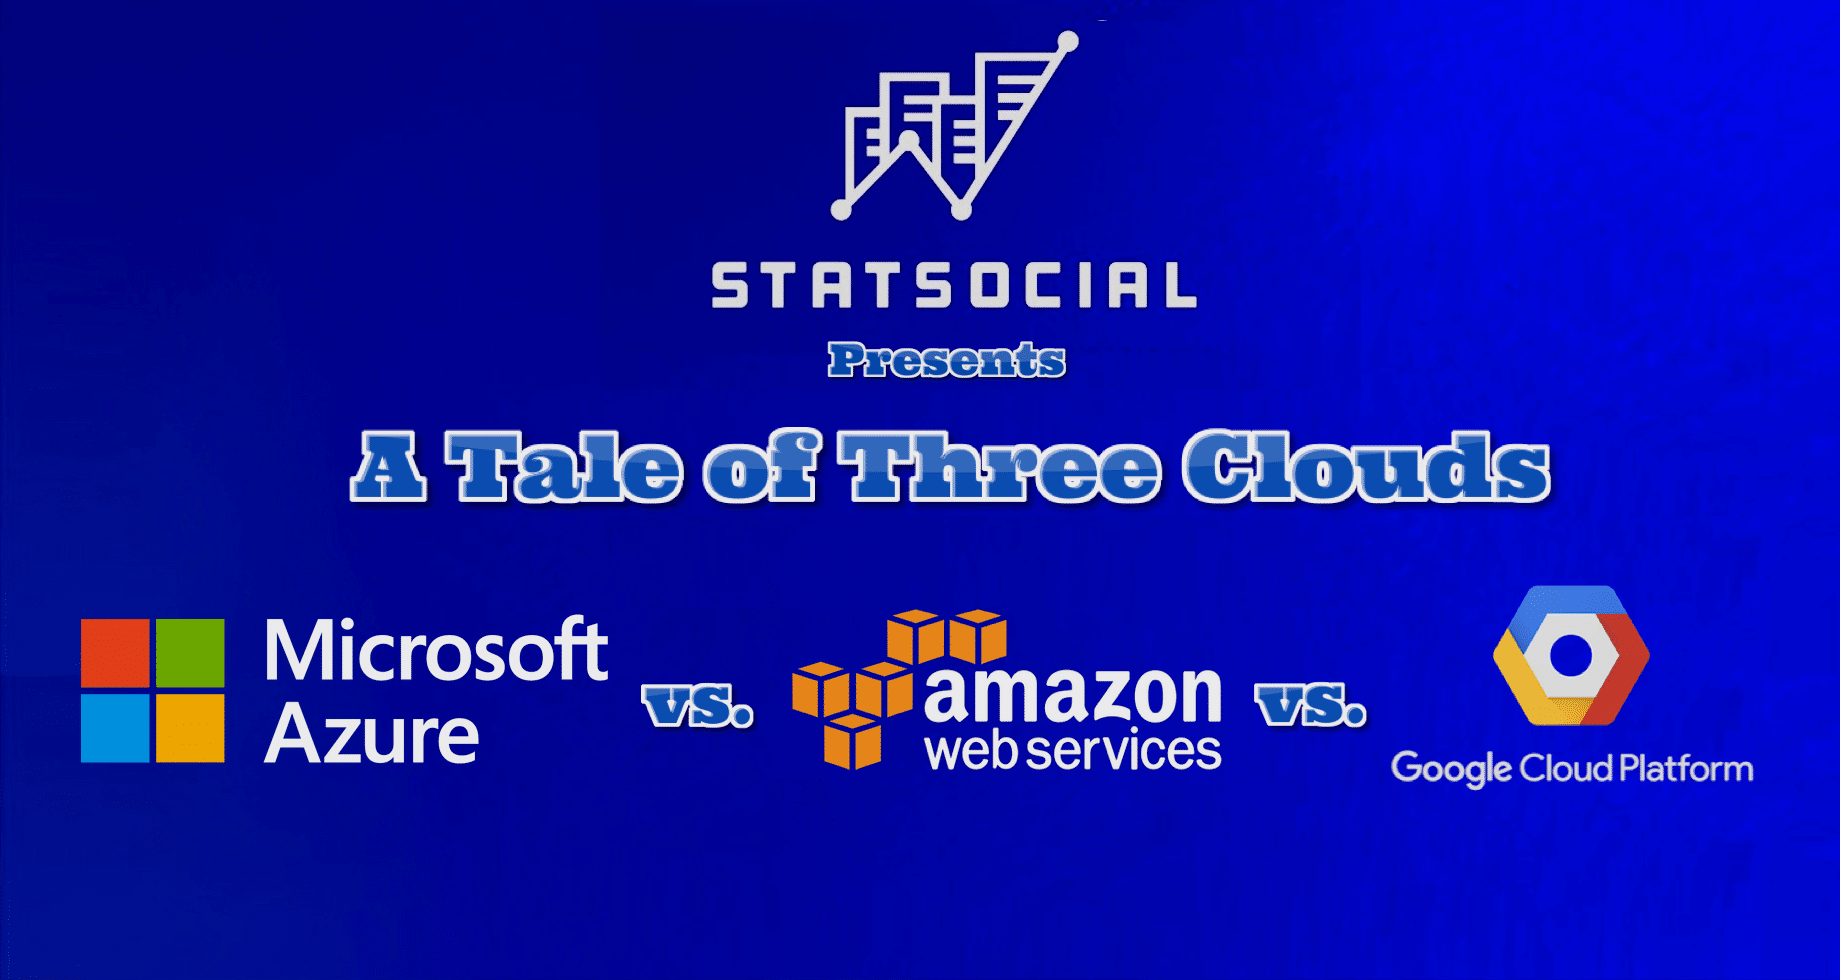 AWS vs. Azure vs. Google Cloud: What Earned Audience Data Tells Us